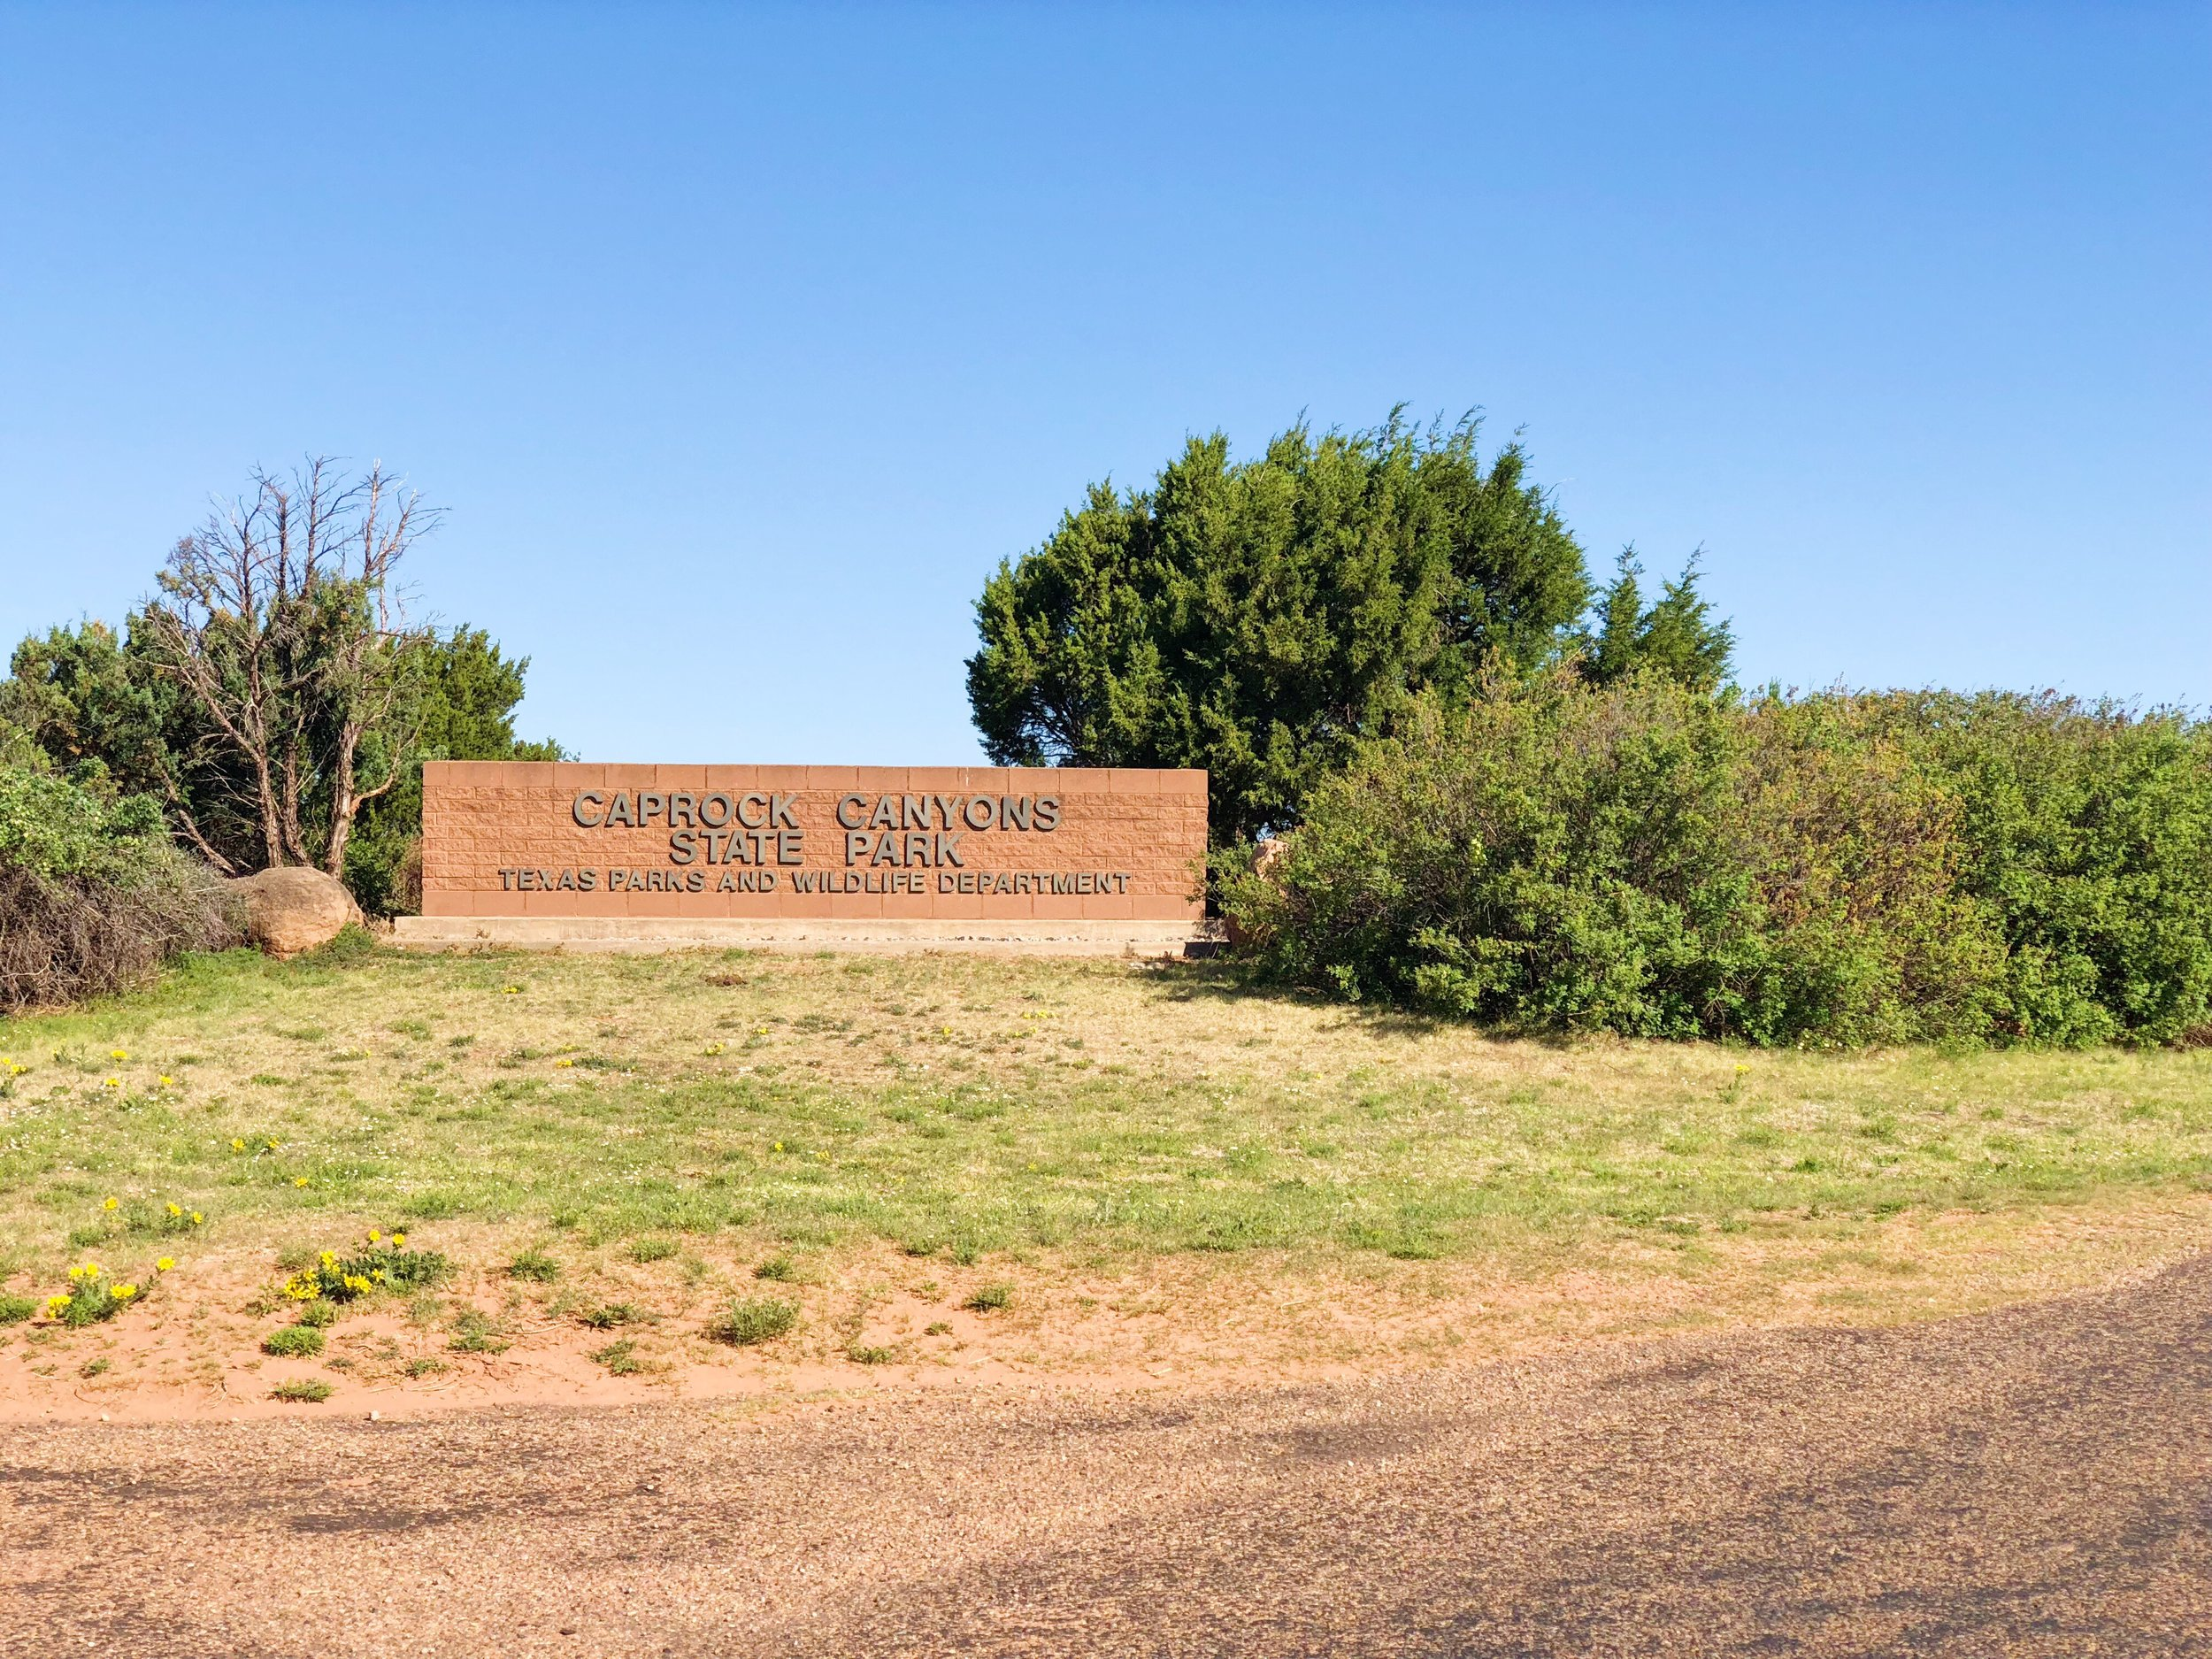 Entry gate to Caprock Canyons State Park, Briscoe County, Texas